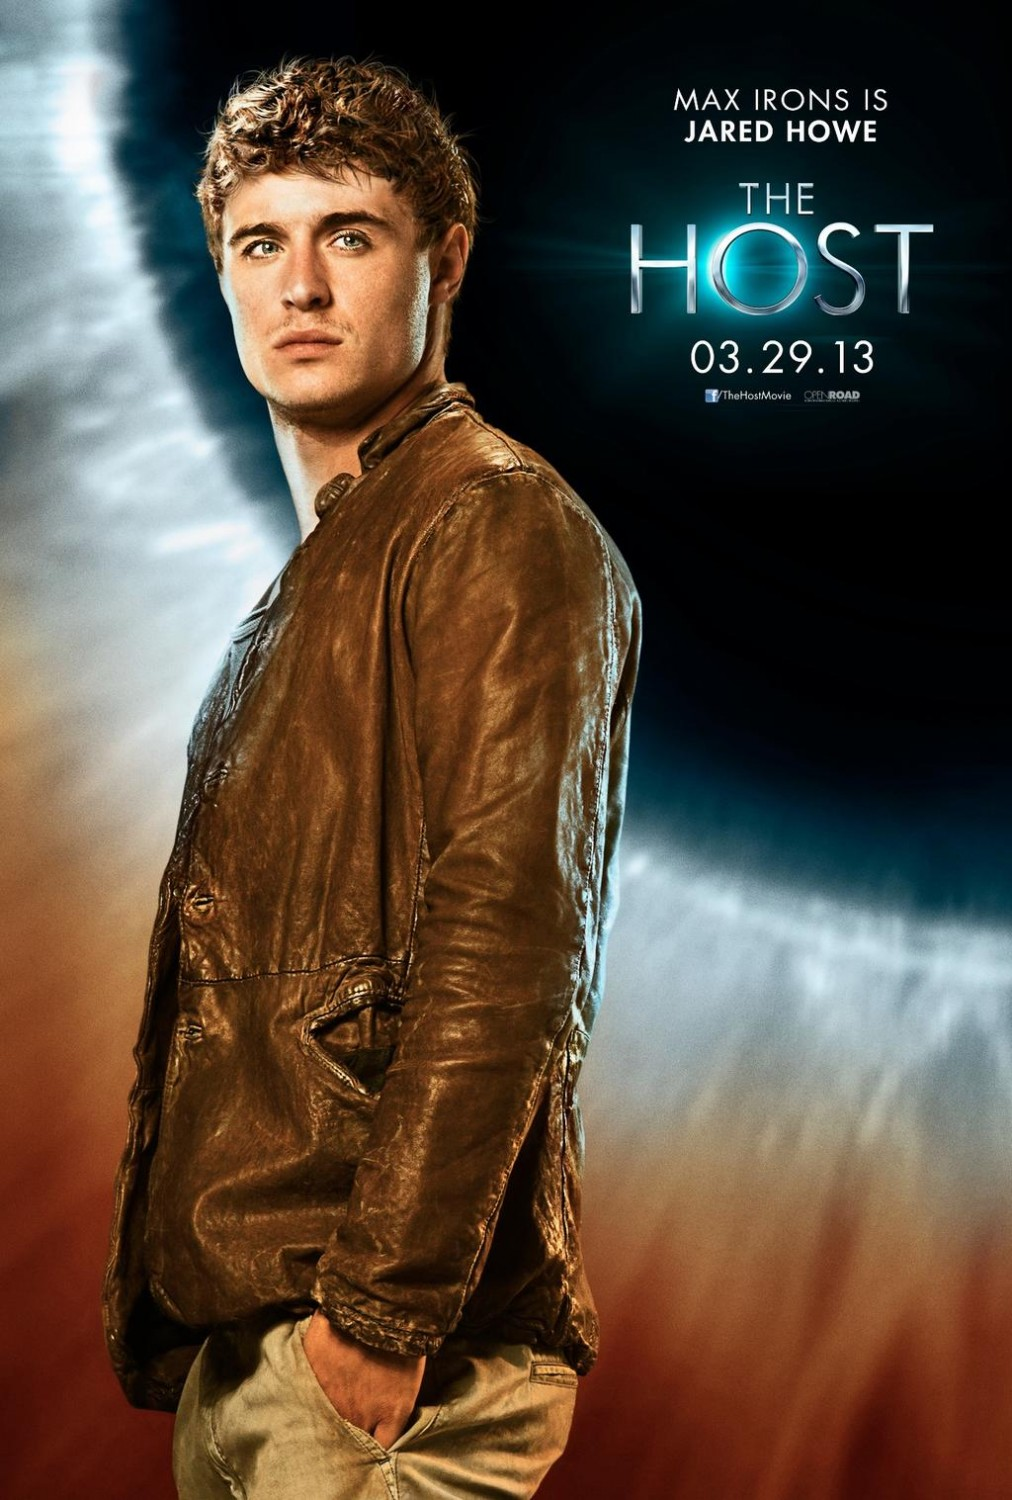 the-host-movie-poster-7-max-irons